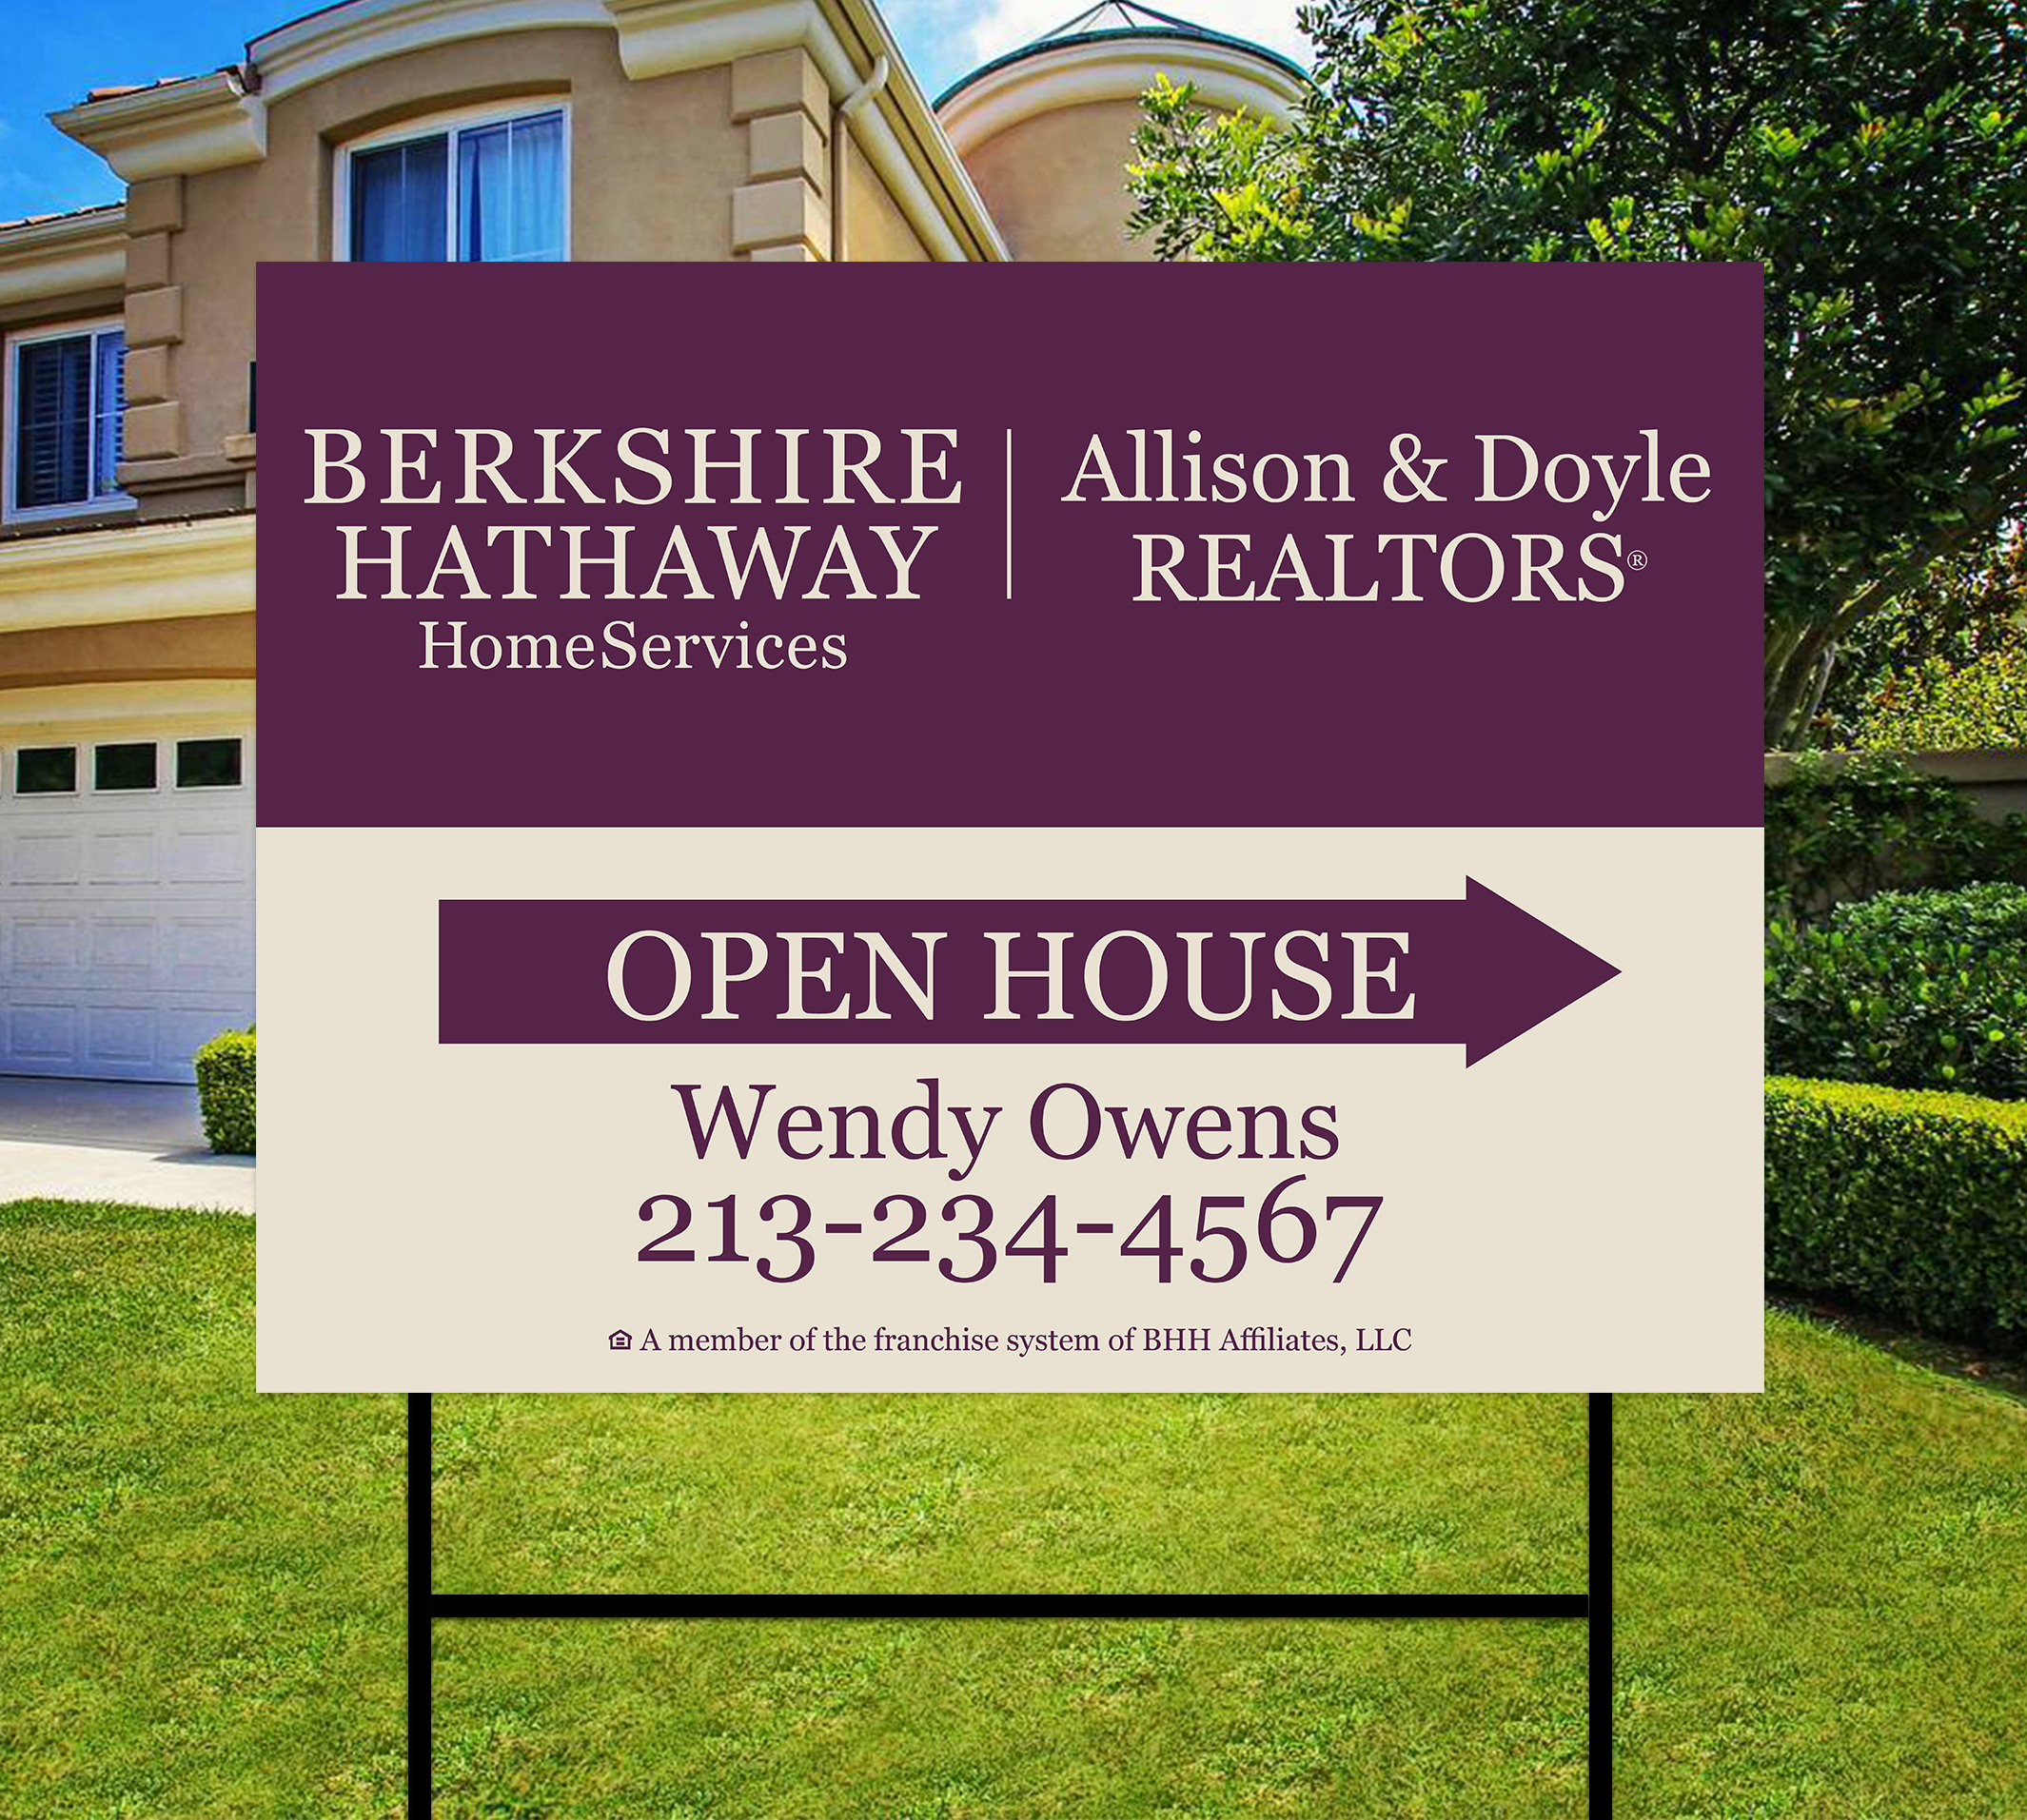 Berkshire Hathaway Sidewalk Sign Design 004